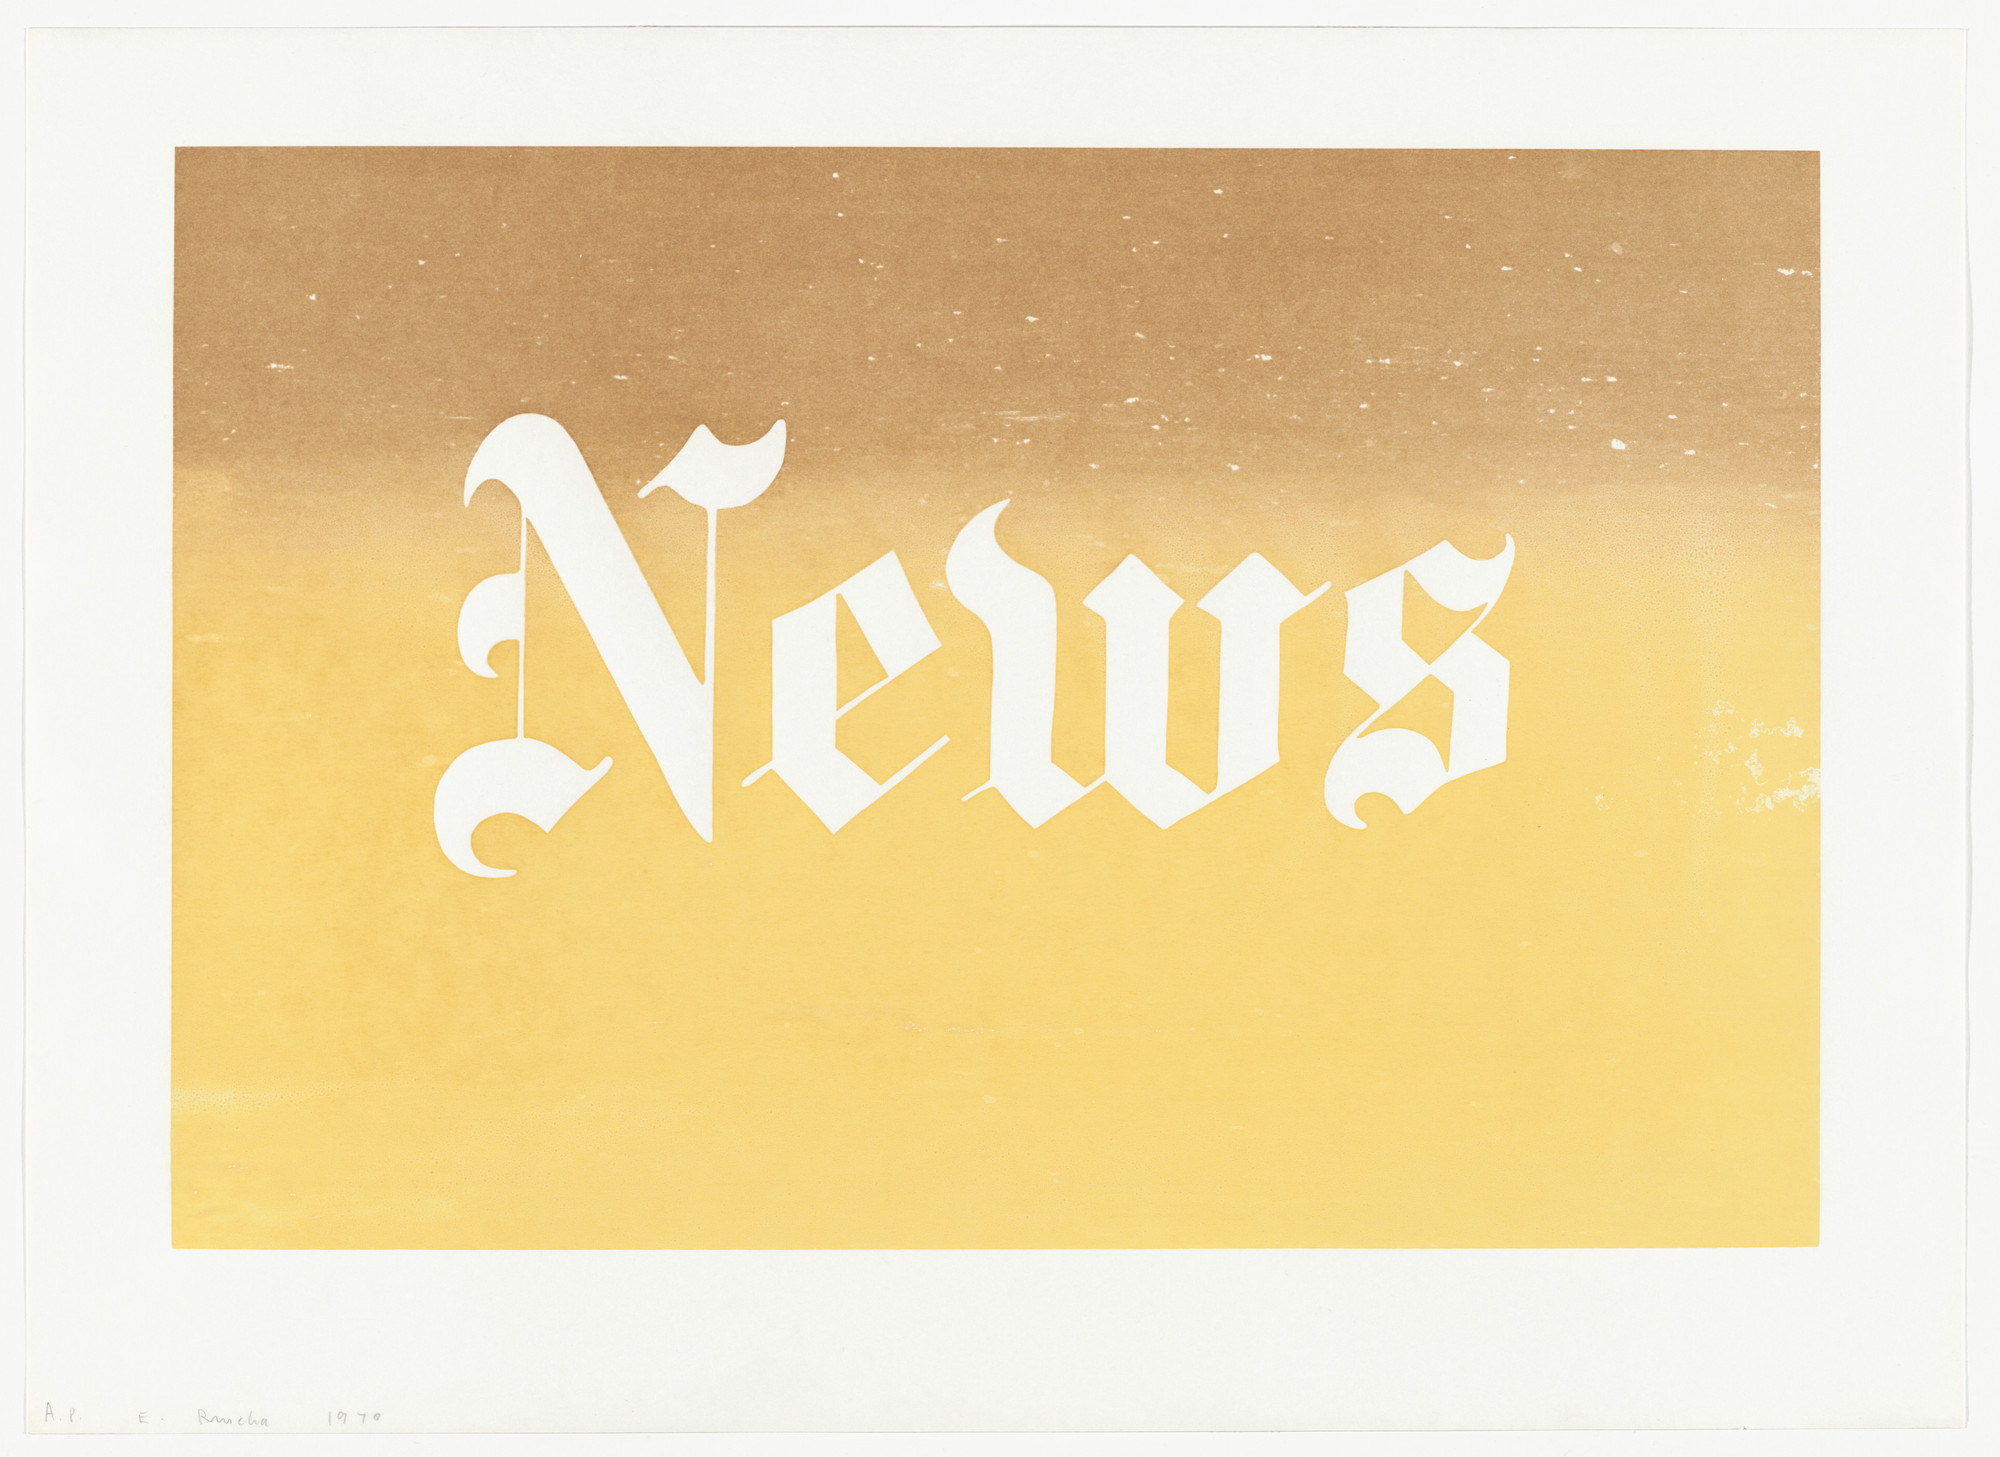 Edward Ruscha. News from News, Mews, Pews, Brews, Stews & Dues. 1970